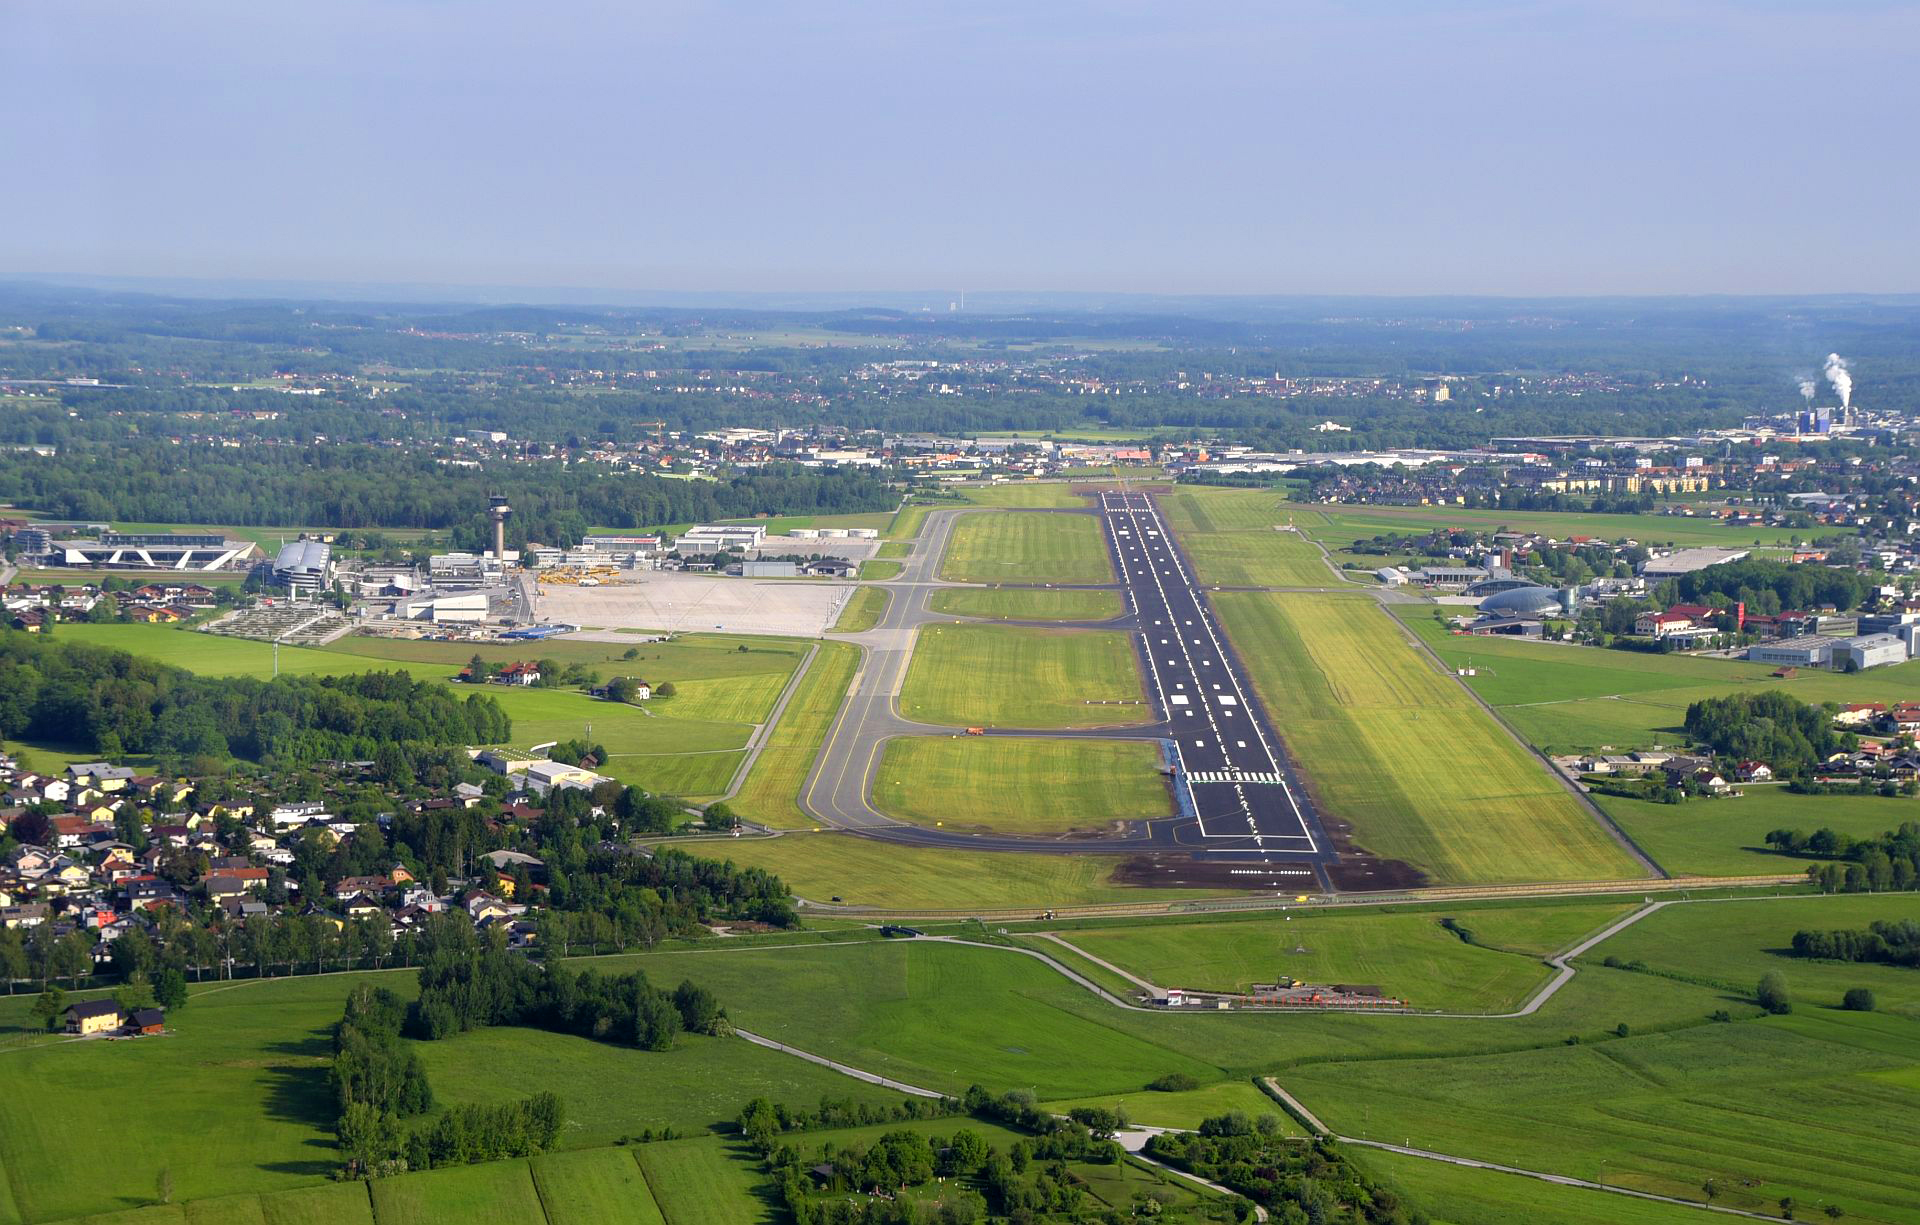 Salzburg_Airport_Runway - By SZGwebmaster - Own work, CC BY-SA 4.0, https-::commons.wikimedia.org:w:index.php?curid=82095343